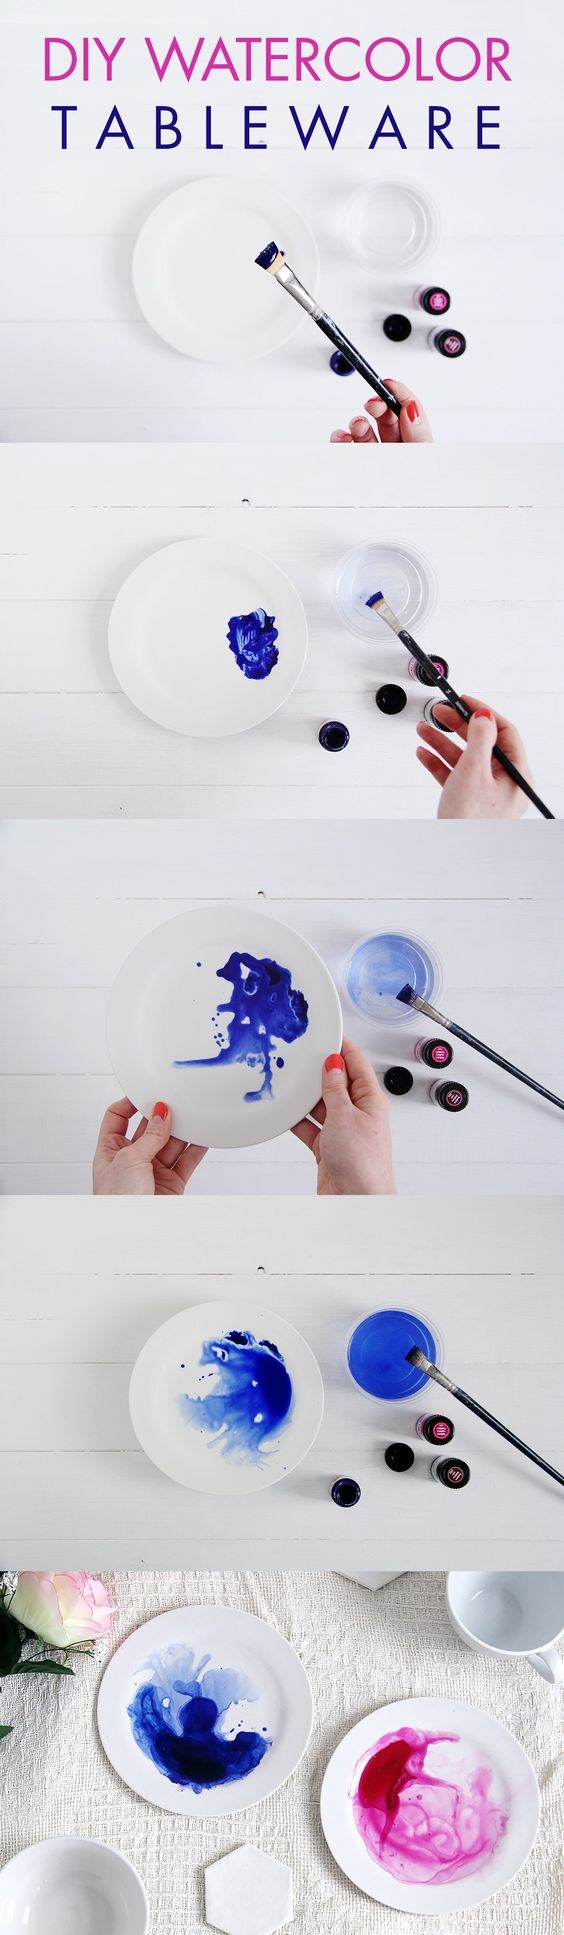 assiette-peinture-diy-customiser-facile-decoration-maison-noel-fetes-blog-bleu